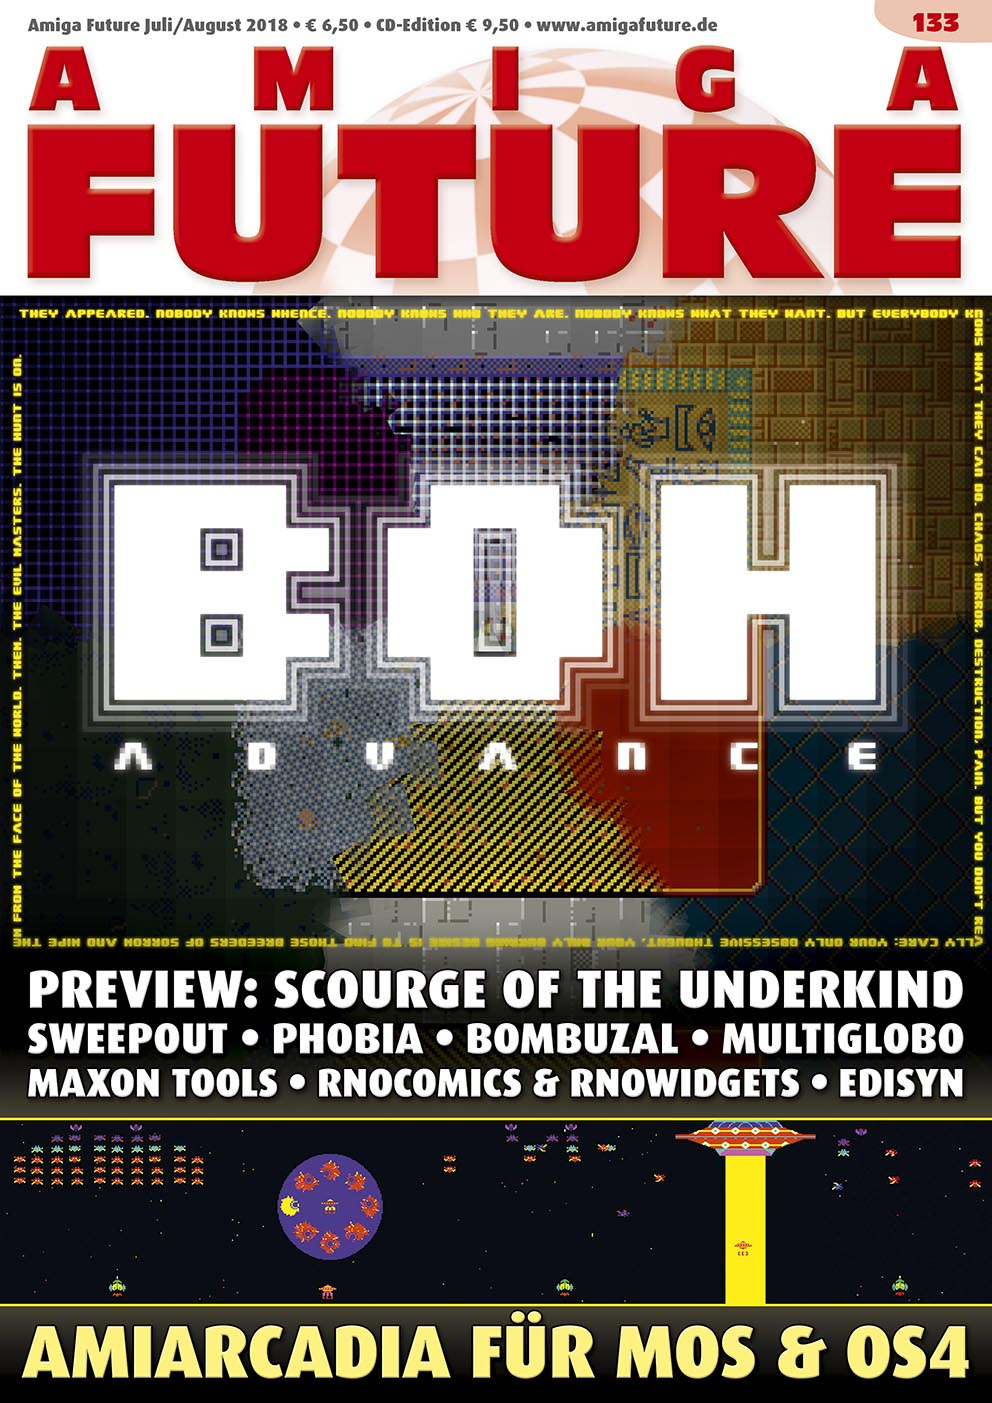 Amiga Future Issue 133